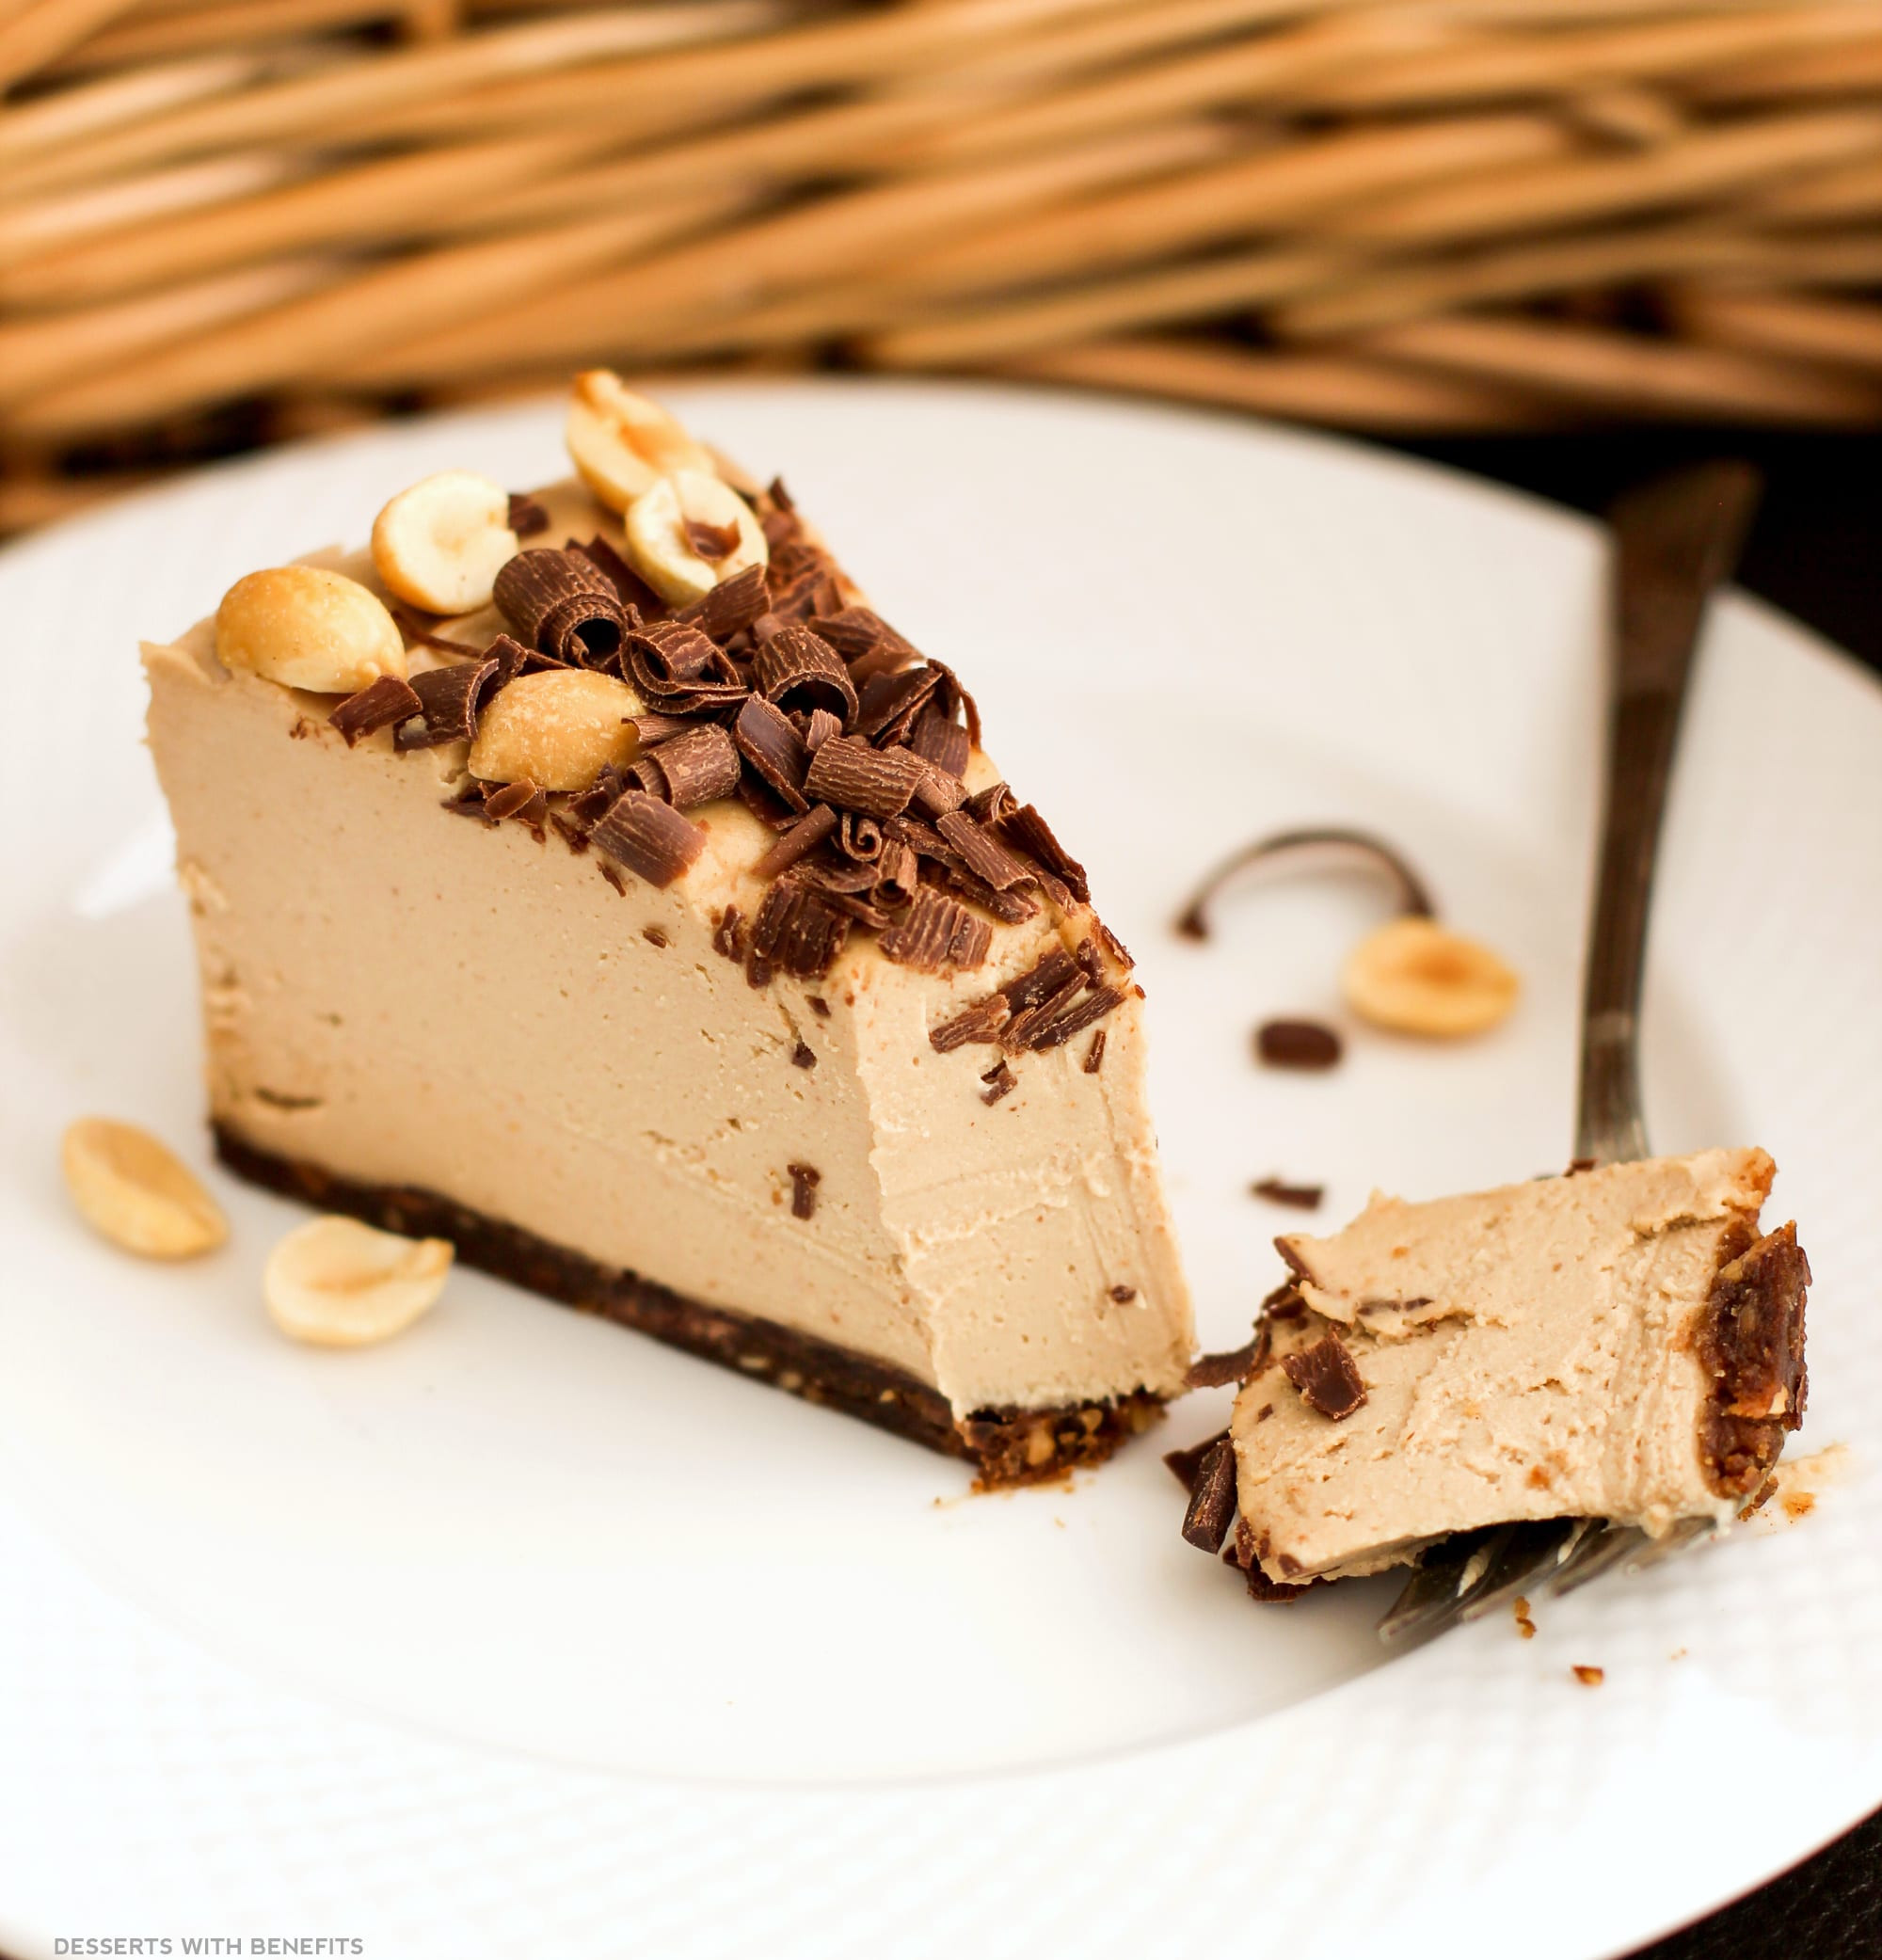 Healthy Peanut Butter Desserts  Healthy Chocolate Peanut Butter Raw Cheesecake